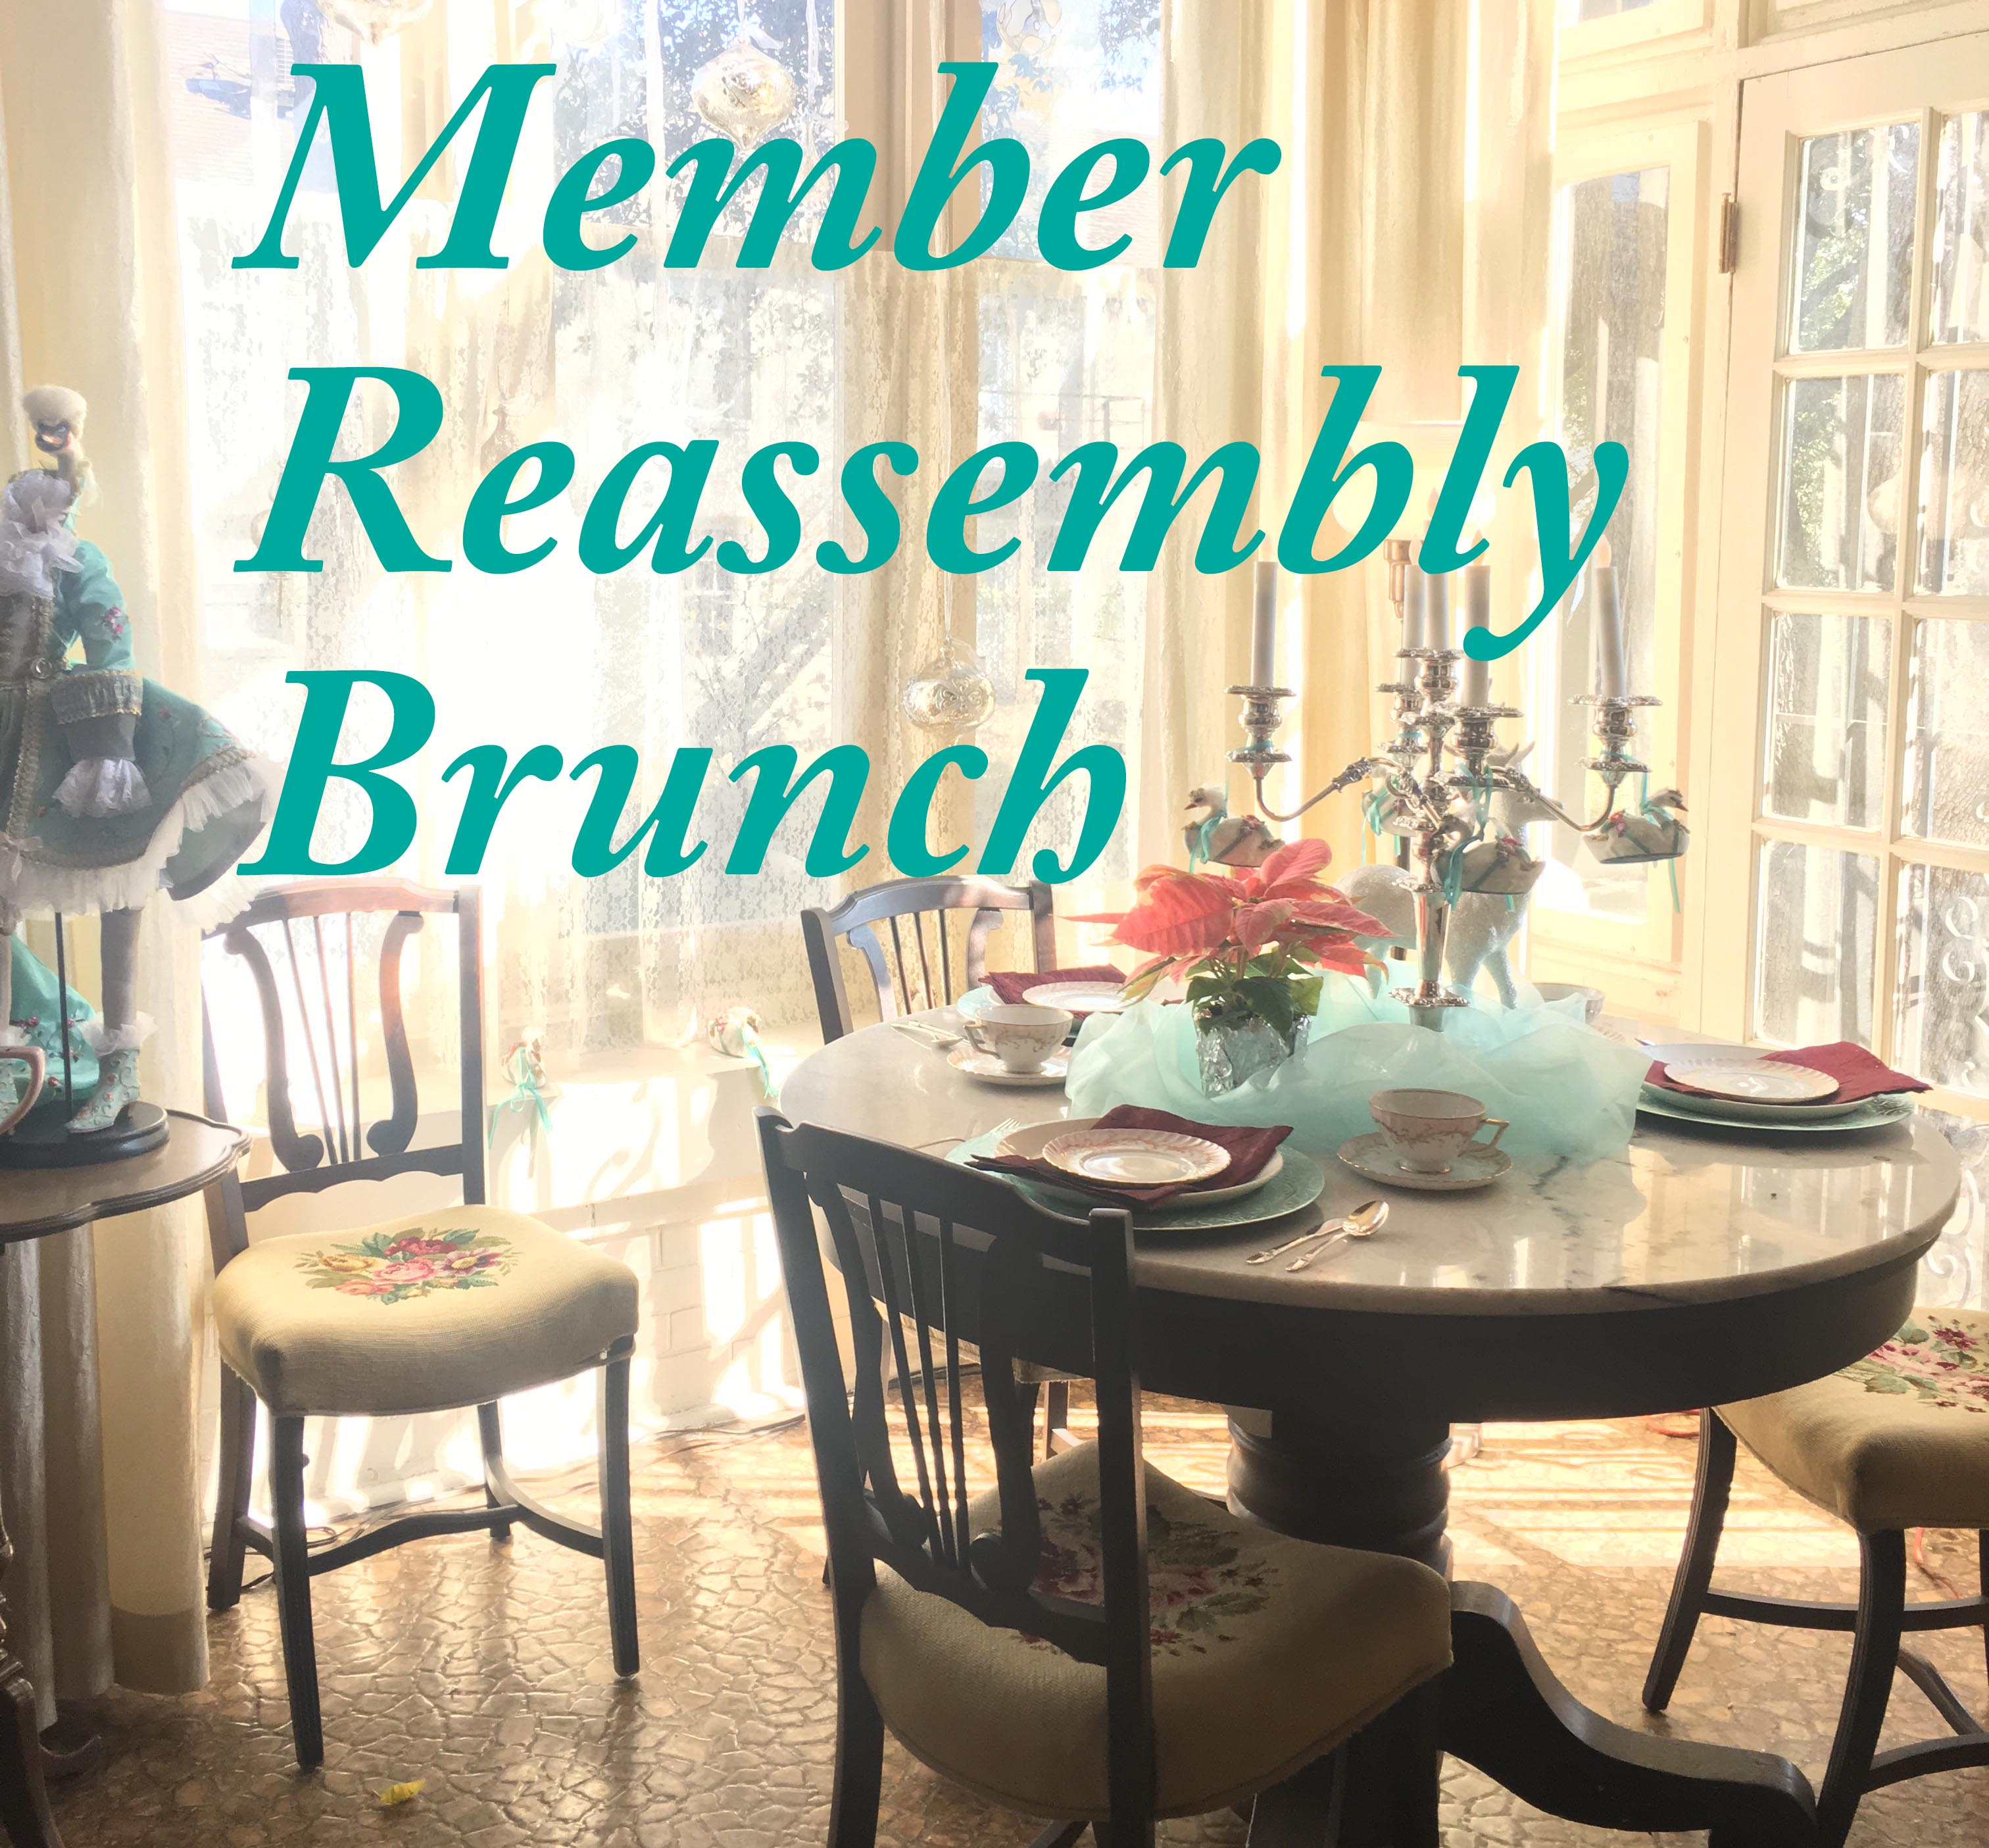 Reassembly Brunch